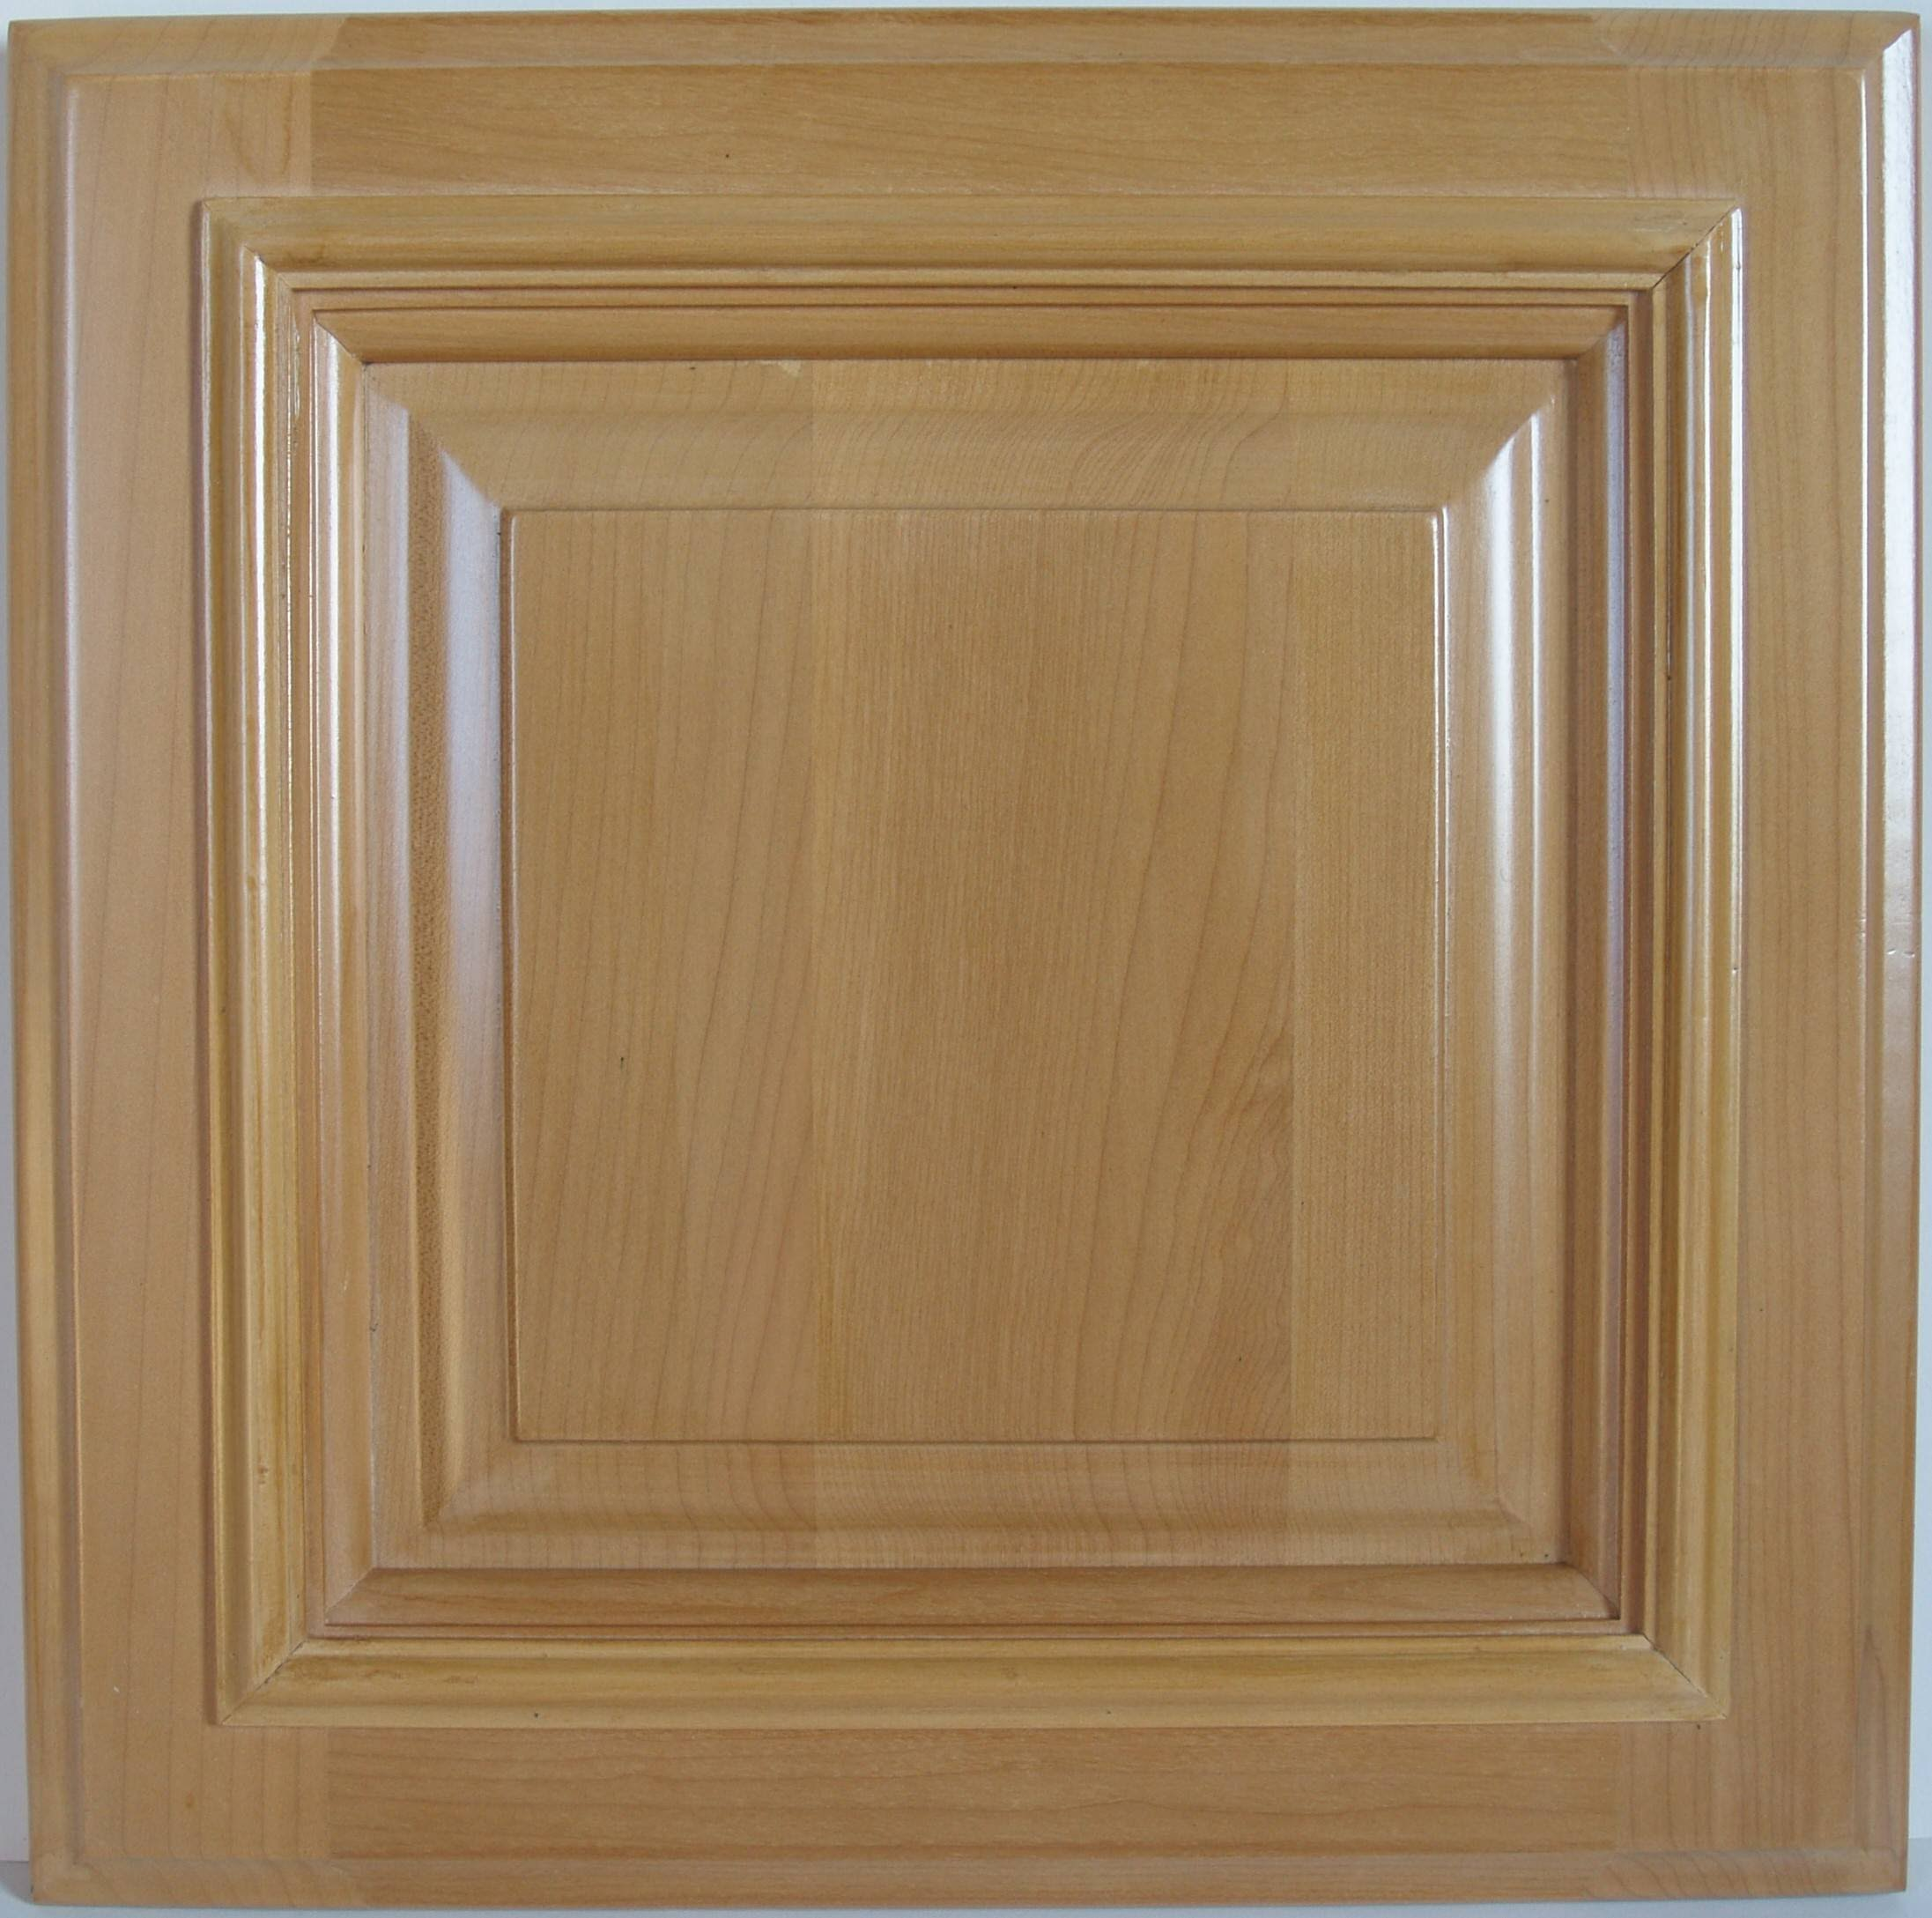 Kitchencabinetdoorstyles customwoodcraftinfo for Kitchen cabinet doors